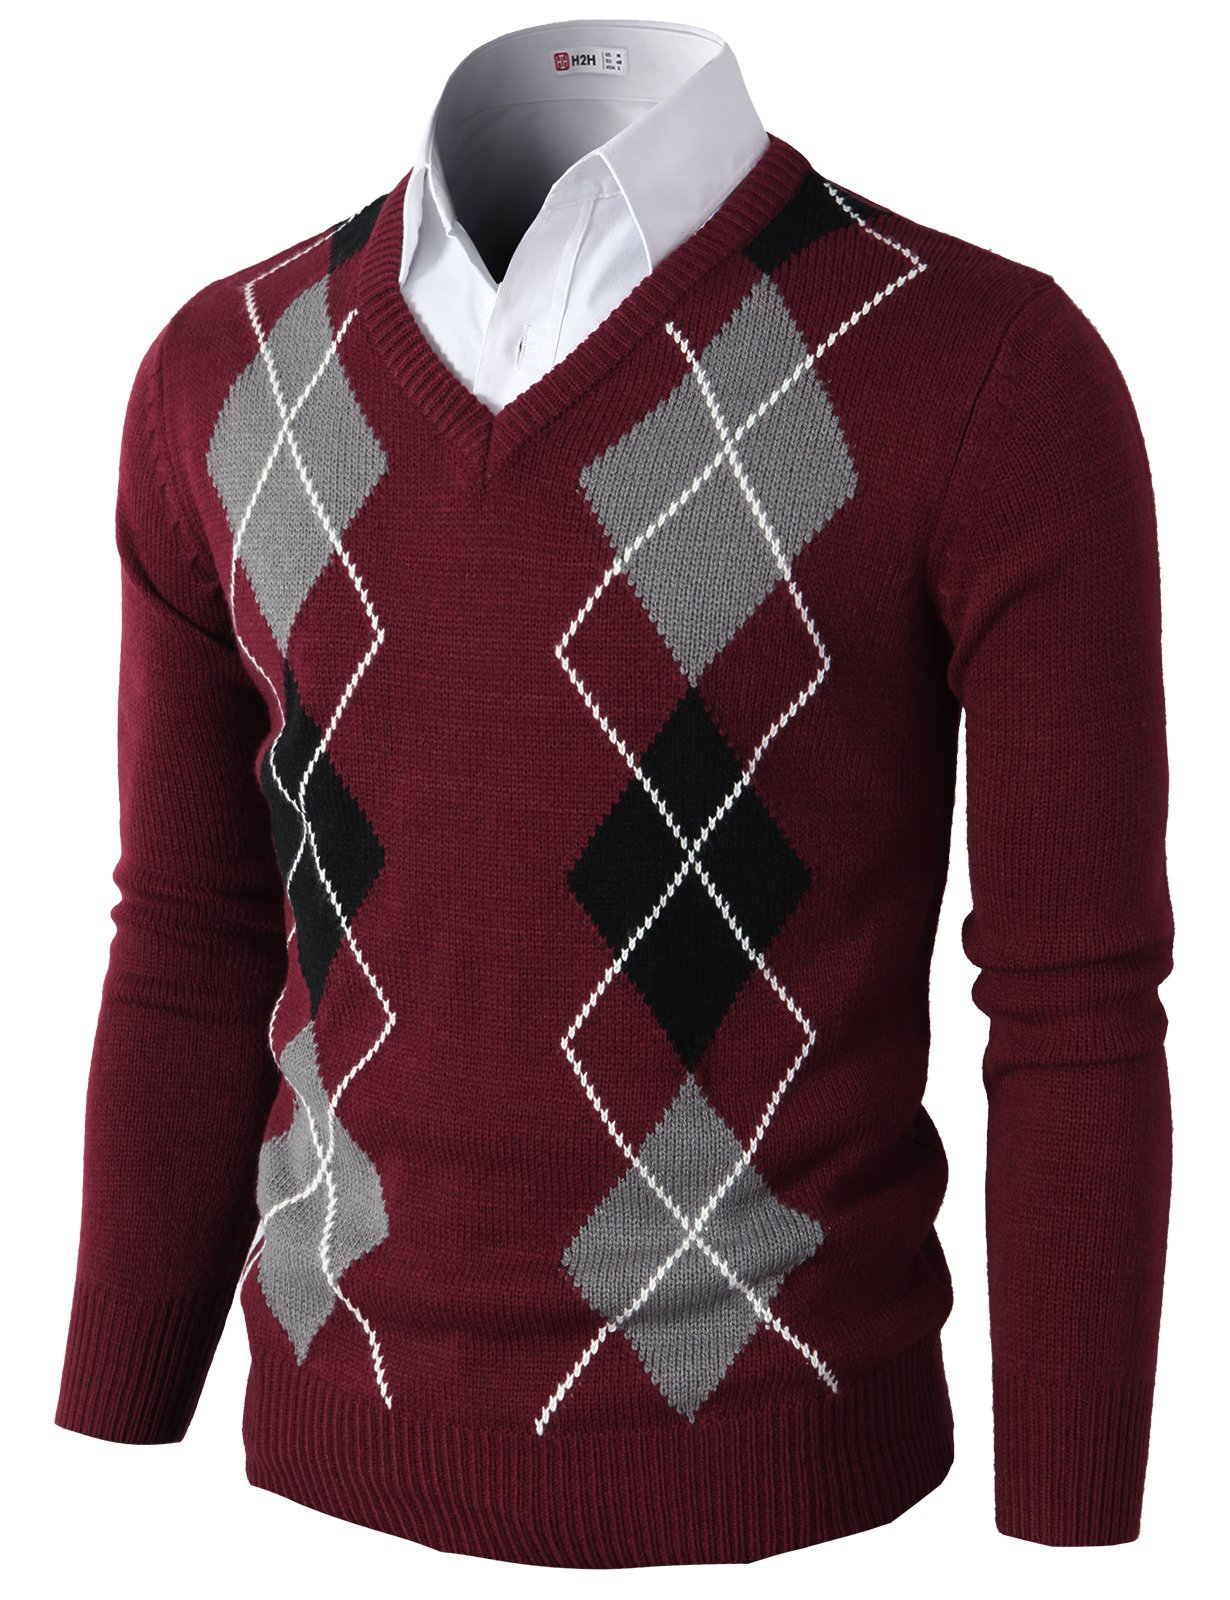 H2H Mens Casual Slim Fit Pullover Argyle Pattern Long Sleeve Sweater Wine US L/Asia XL (CMOSWL013)